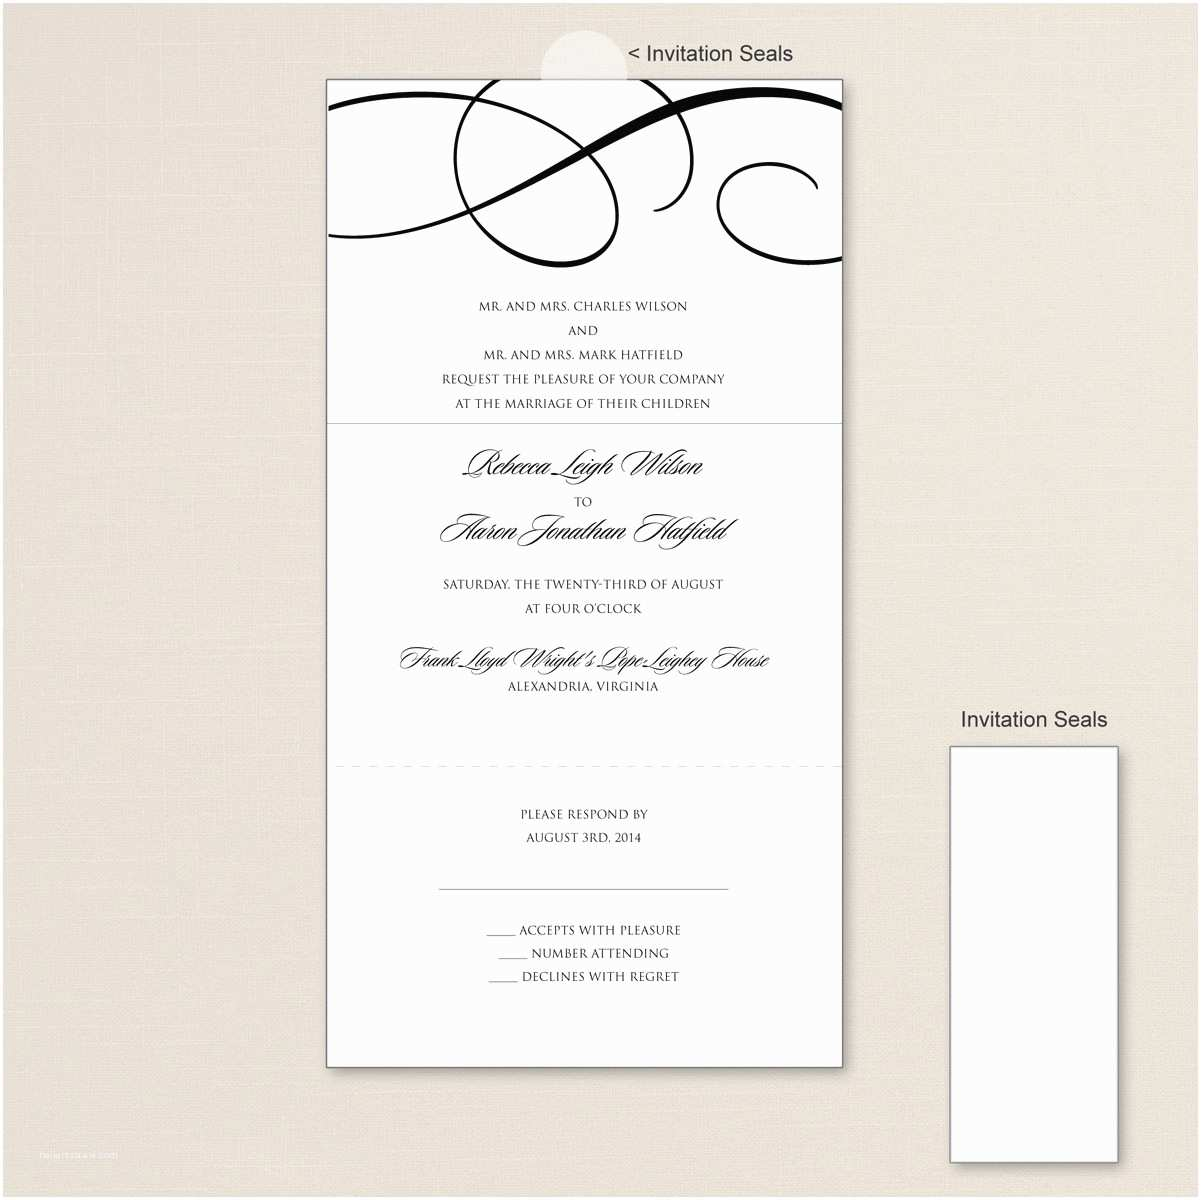 Seal and Send Wedding Invitations Vistaprint Send and Seal Wedding Invitations Templates Various